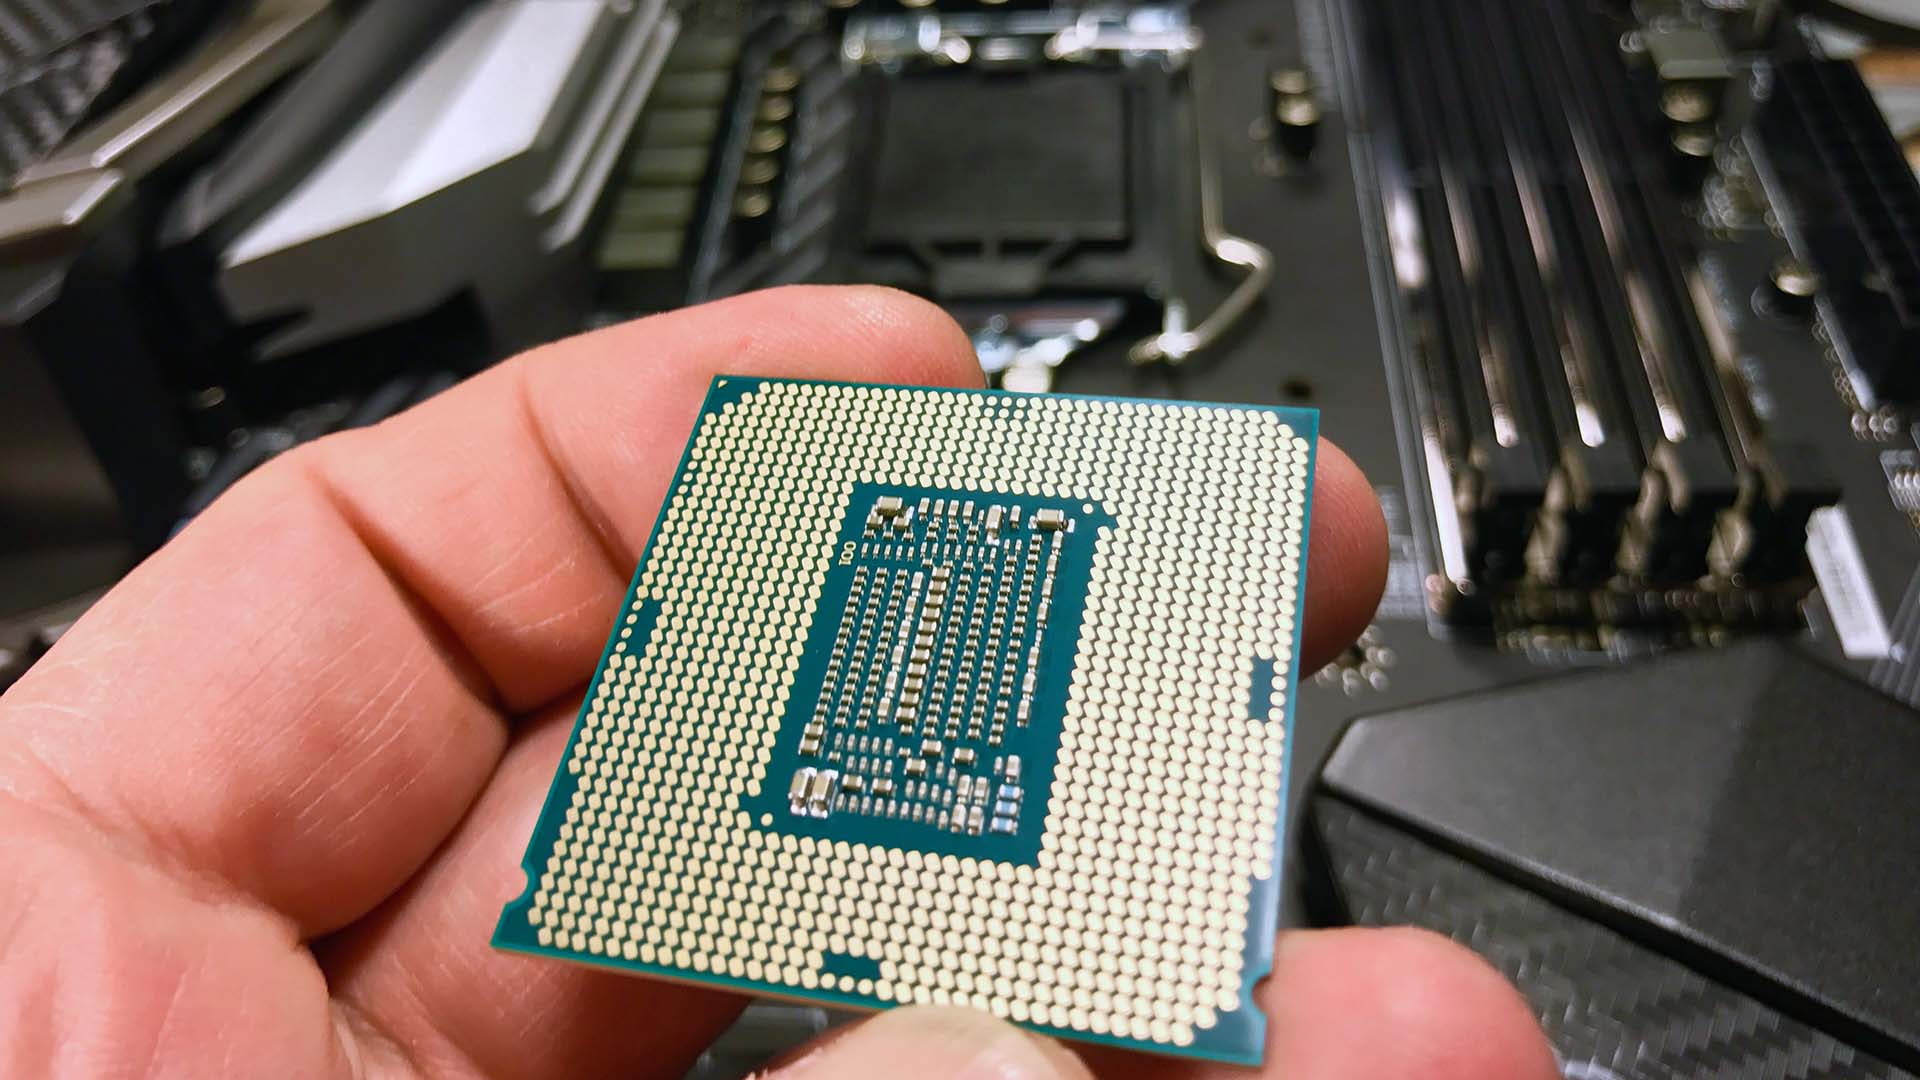 How to overclock Intel CPUs | PC Gamer